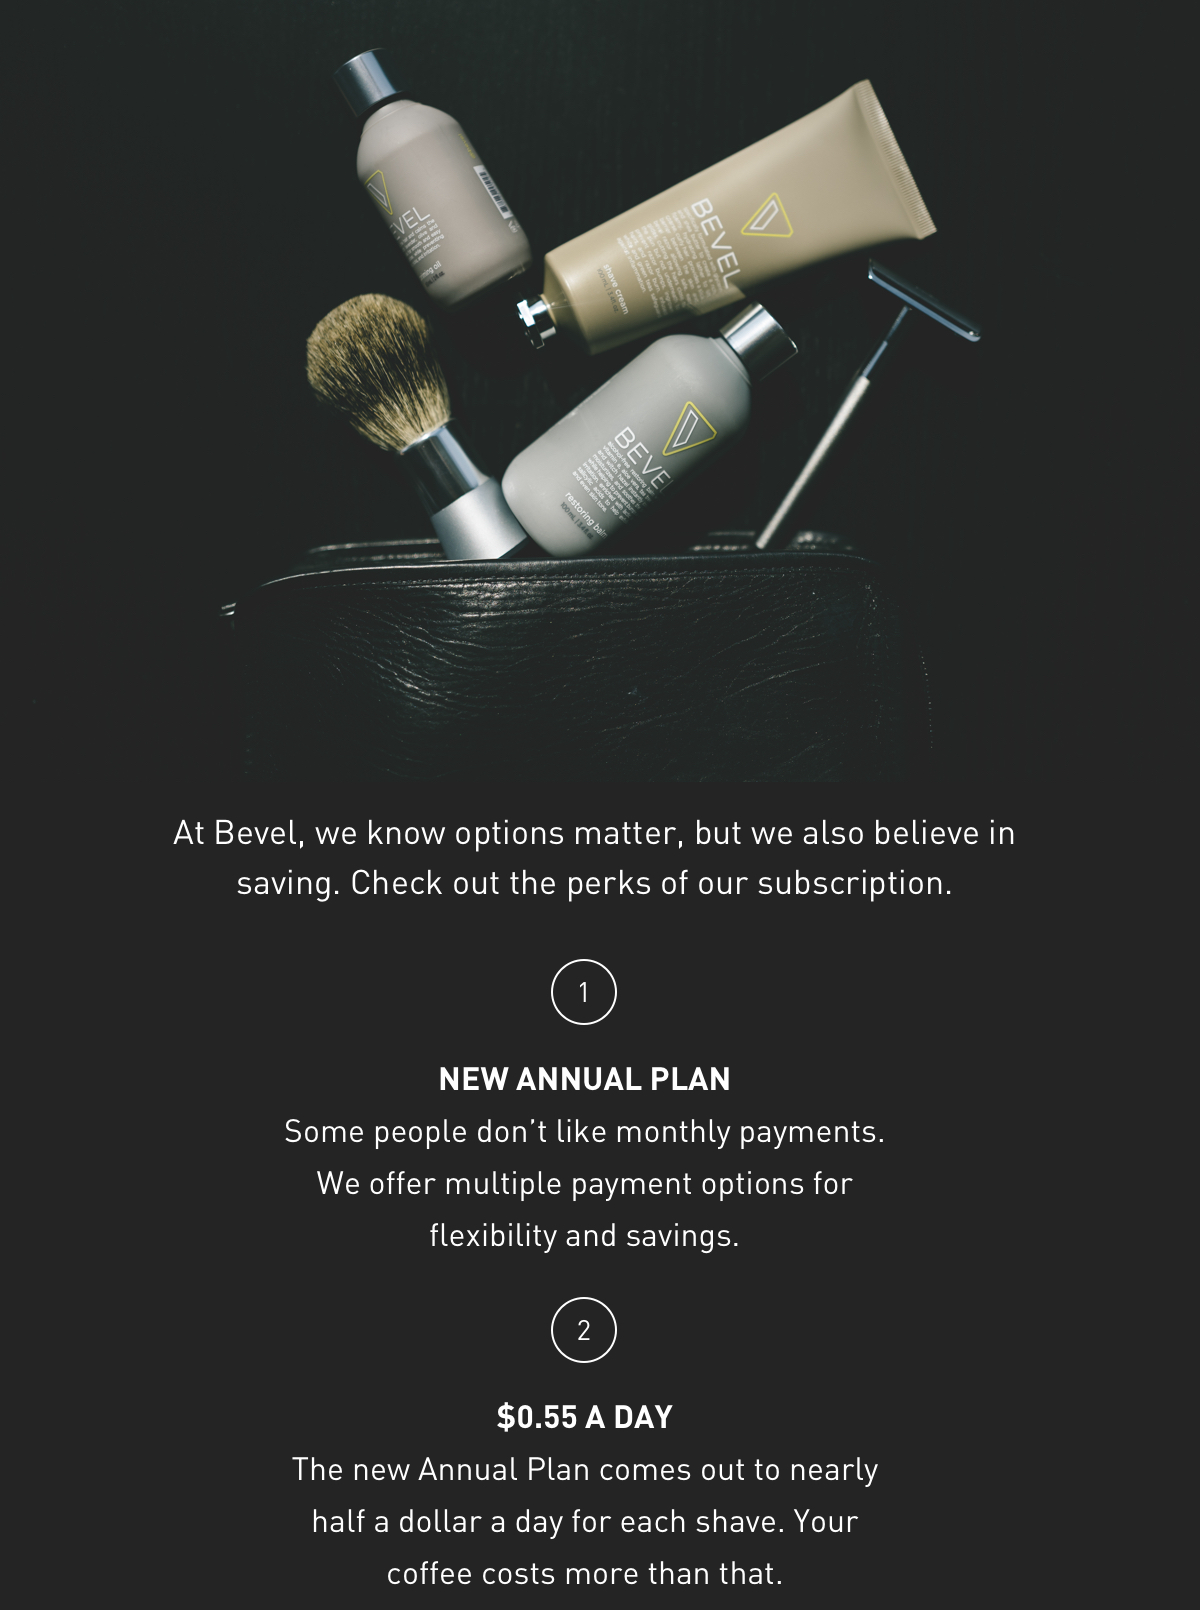 Check out the perks of our Bevel subscription